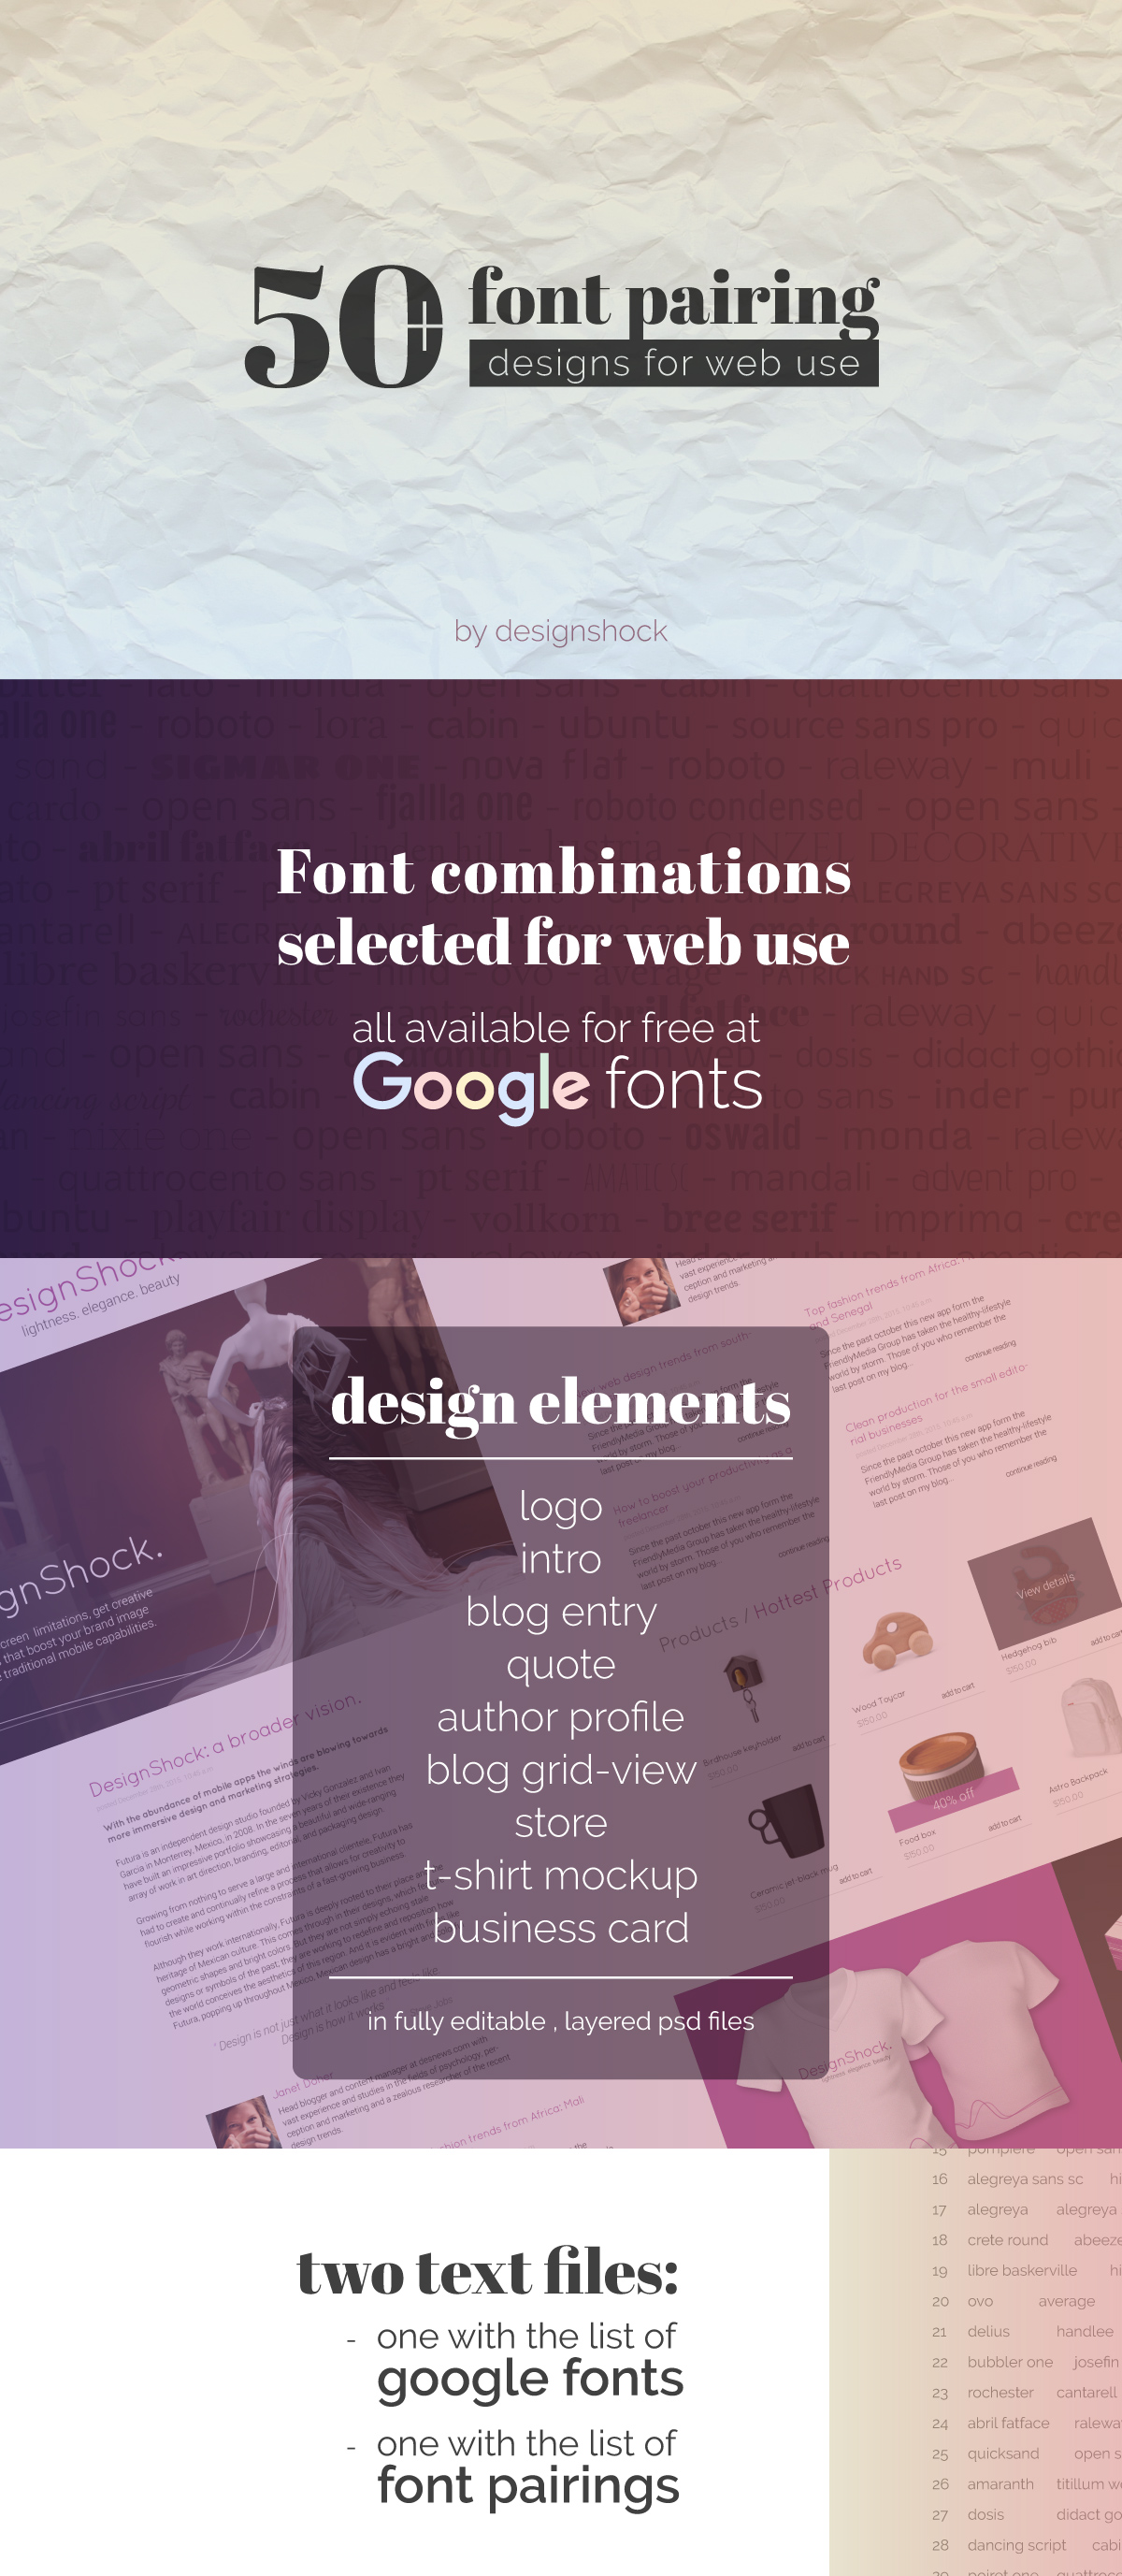 font_pairing_designs_intro